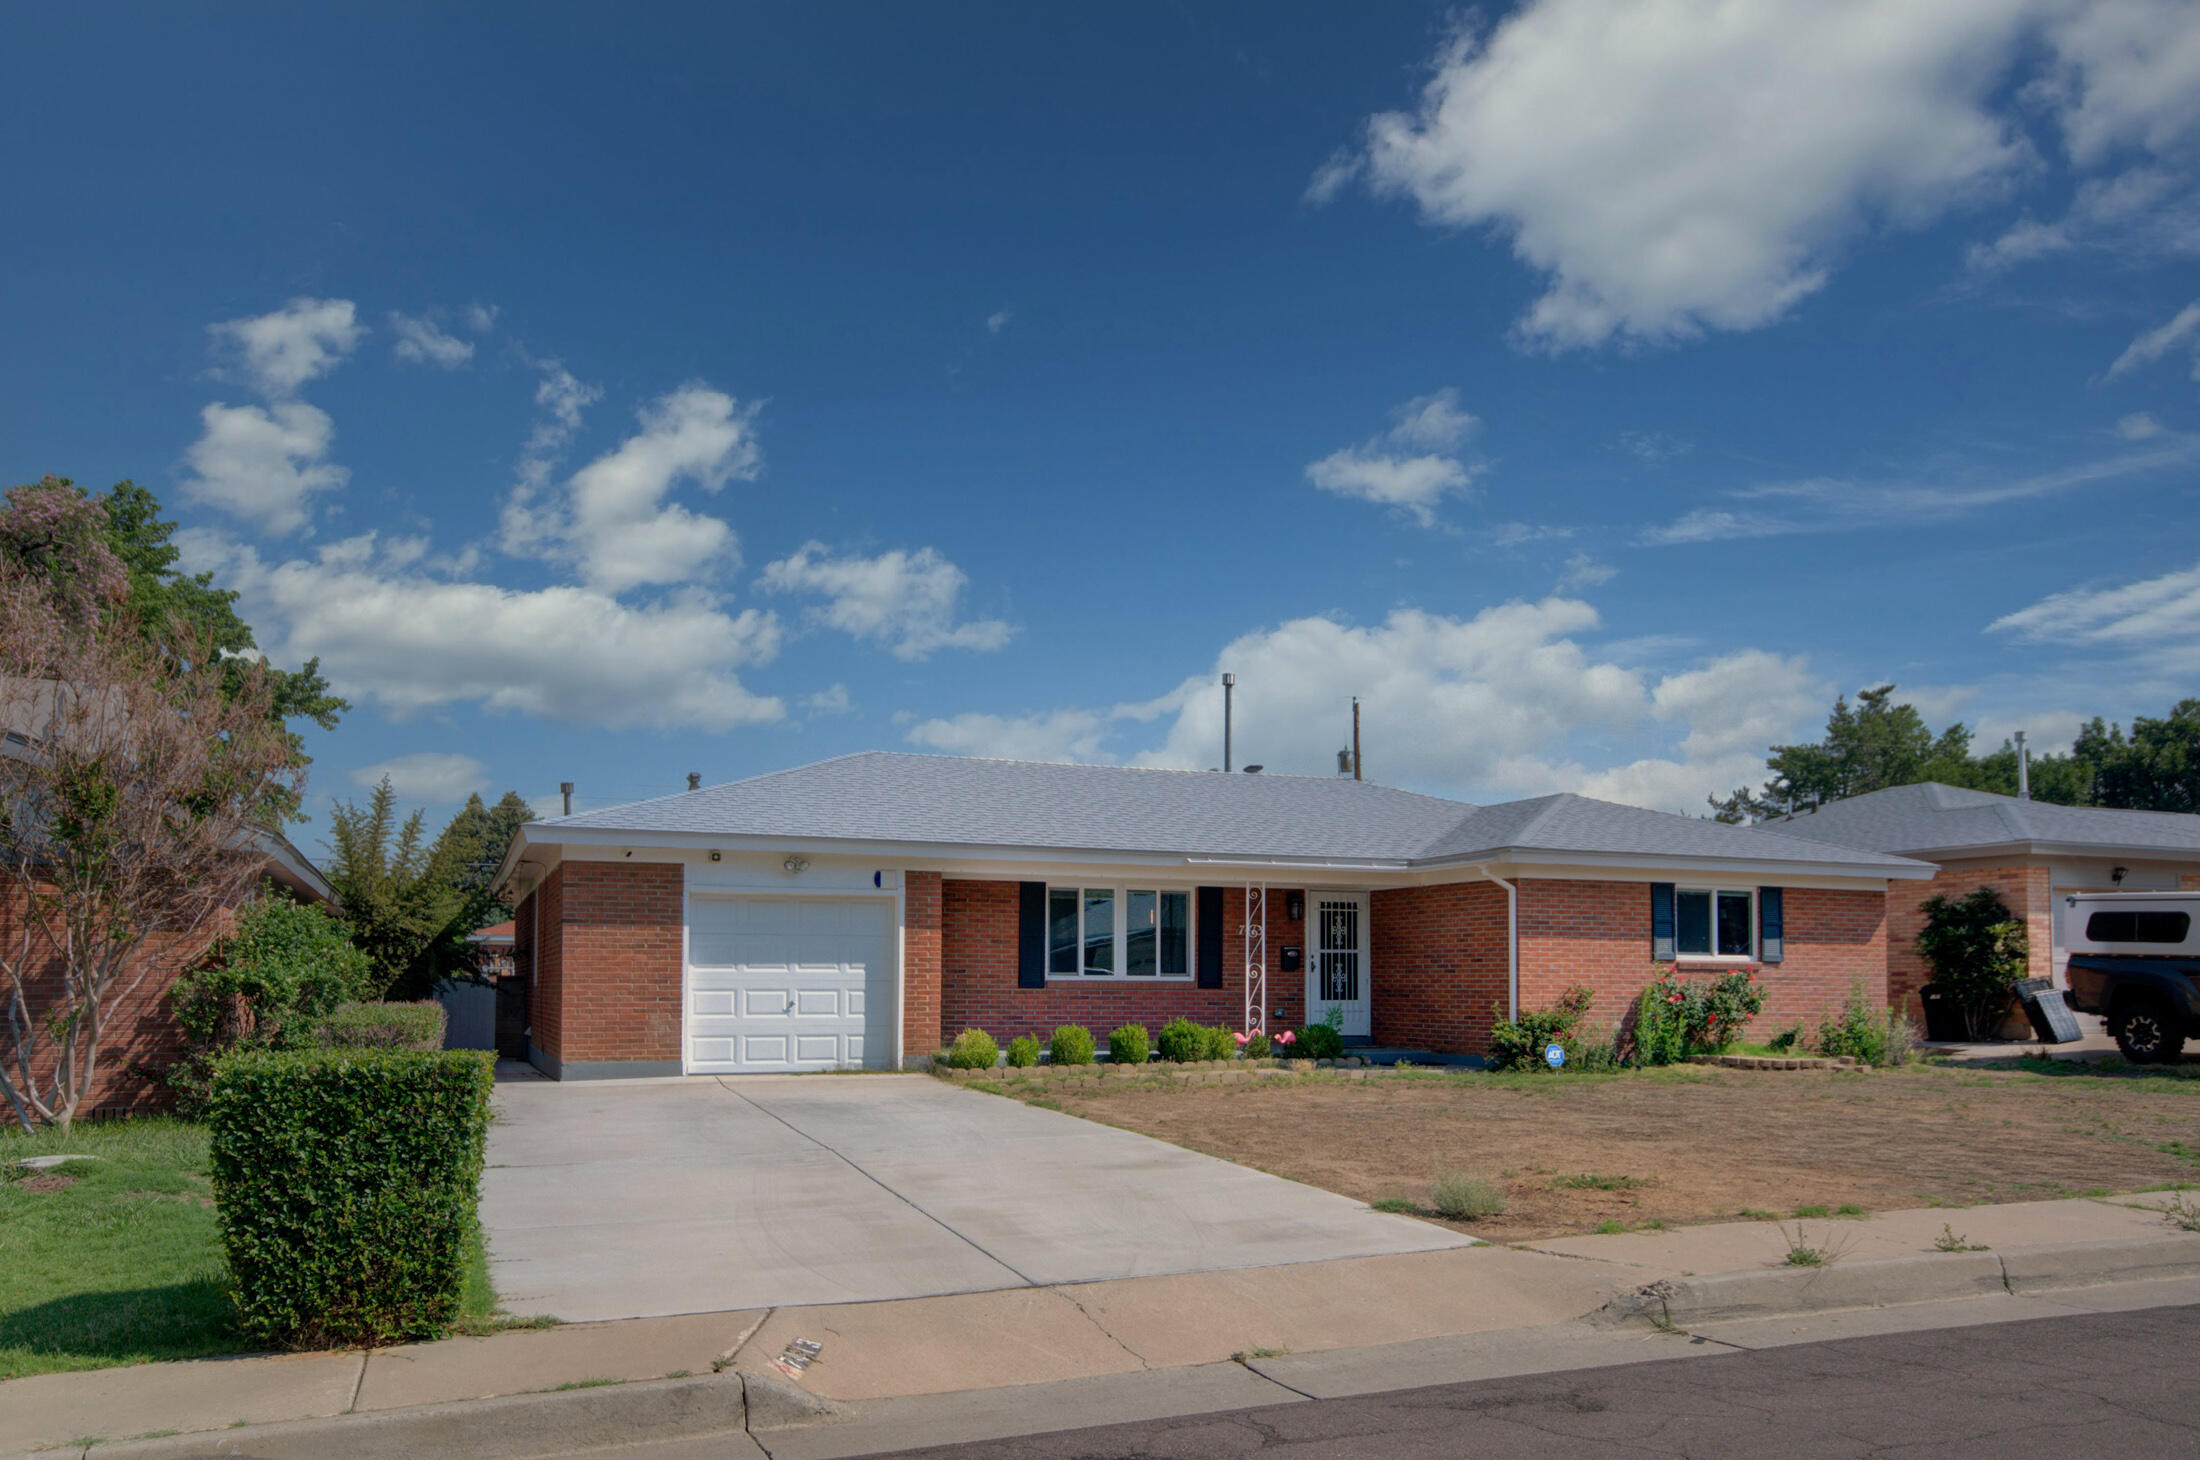 Great location, updated & move in ready.  The perfect 3. Amazing quality of life. A short stroll to Taylor Park, Winrock/Coronado, Trader Joes, ABQ Uptown, theater, library, & restaurants & easy access to I40. This wonderfully appointed brick home offers 3 bdrms, 2 baths, beautiful kitchen, living room and family room w fireplace, laundry room addition, newer flooring, windows, refrigerated air, freshly painted throughout, ceiling fans, water heater, small garage for storage or small vehicle, and newer driveway. All those upgrades and it's original 1956 charm, with refinished hardwood floors, covered patio, large backyard to build your own sanctuary and entertainment areas. They just don't build homes like this anymore. And a cul-du-sac street, yay! All offers reviewed after Monday 12p.